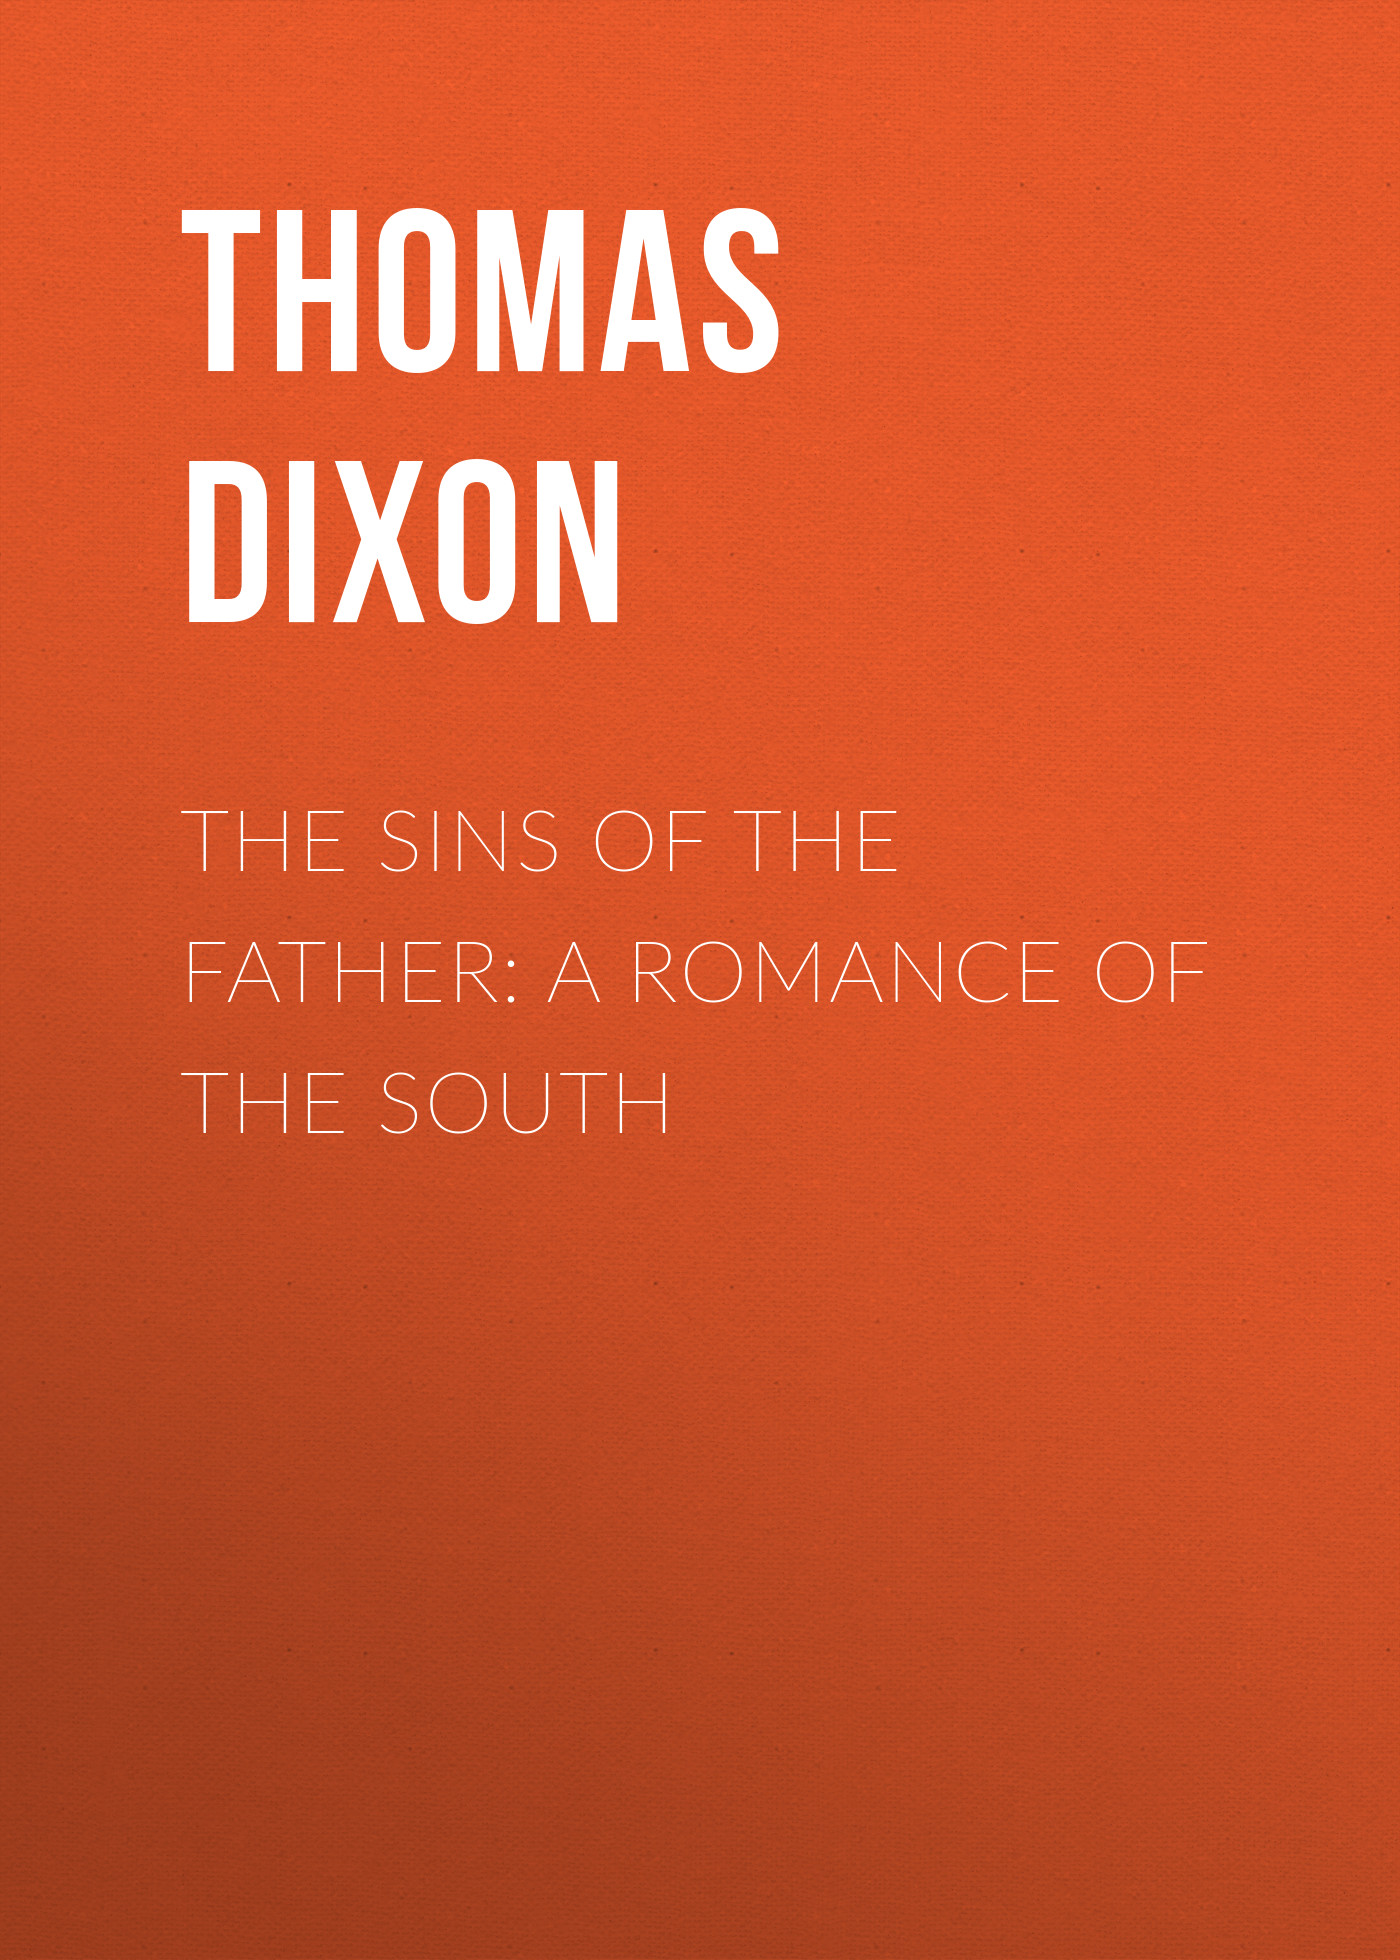 Thomas Dixon The Sins of the Father: A Romance of the South archer j the sins of the father volume two the clifton chronicles